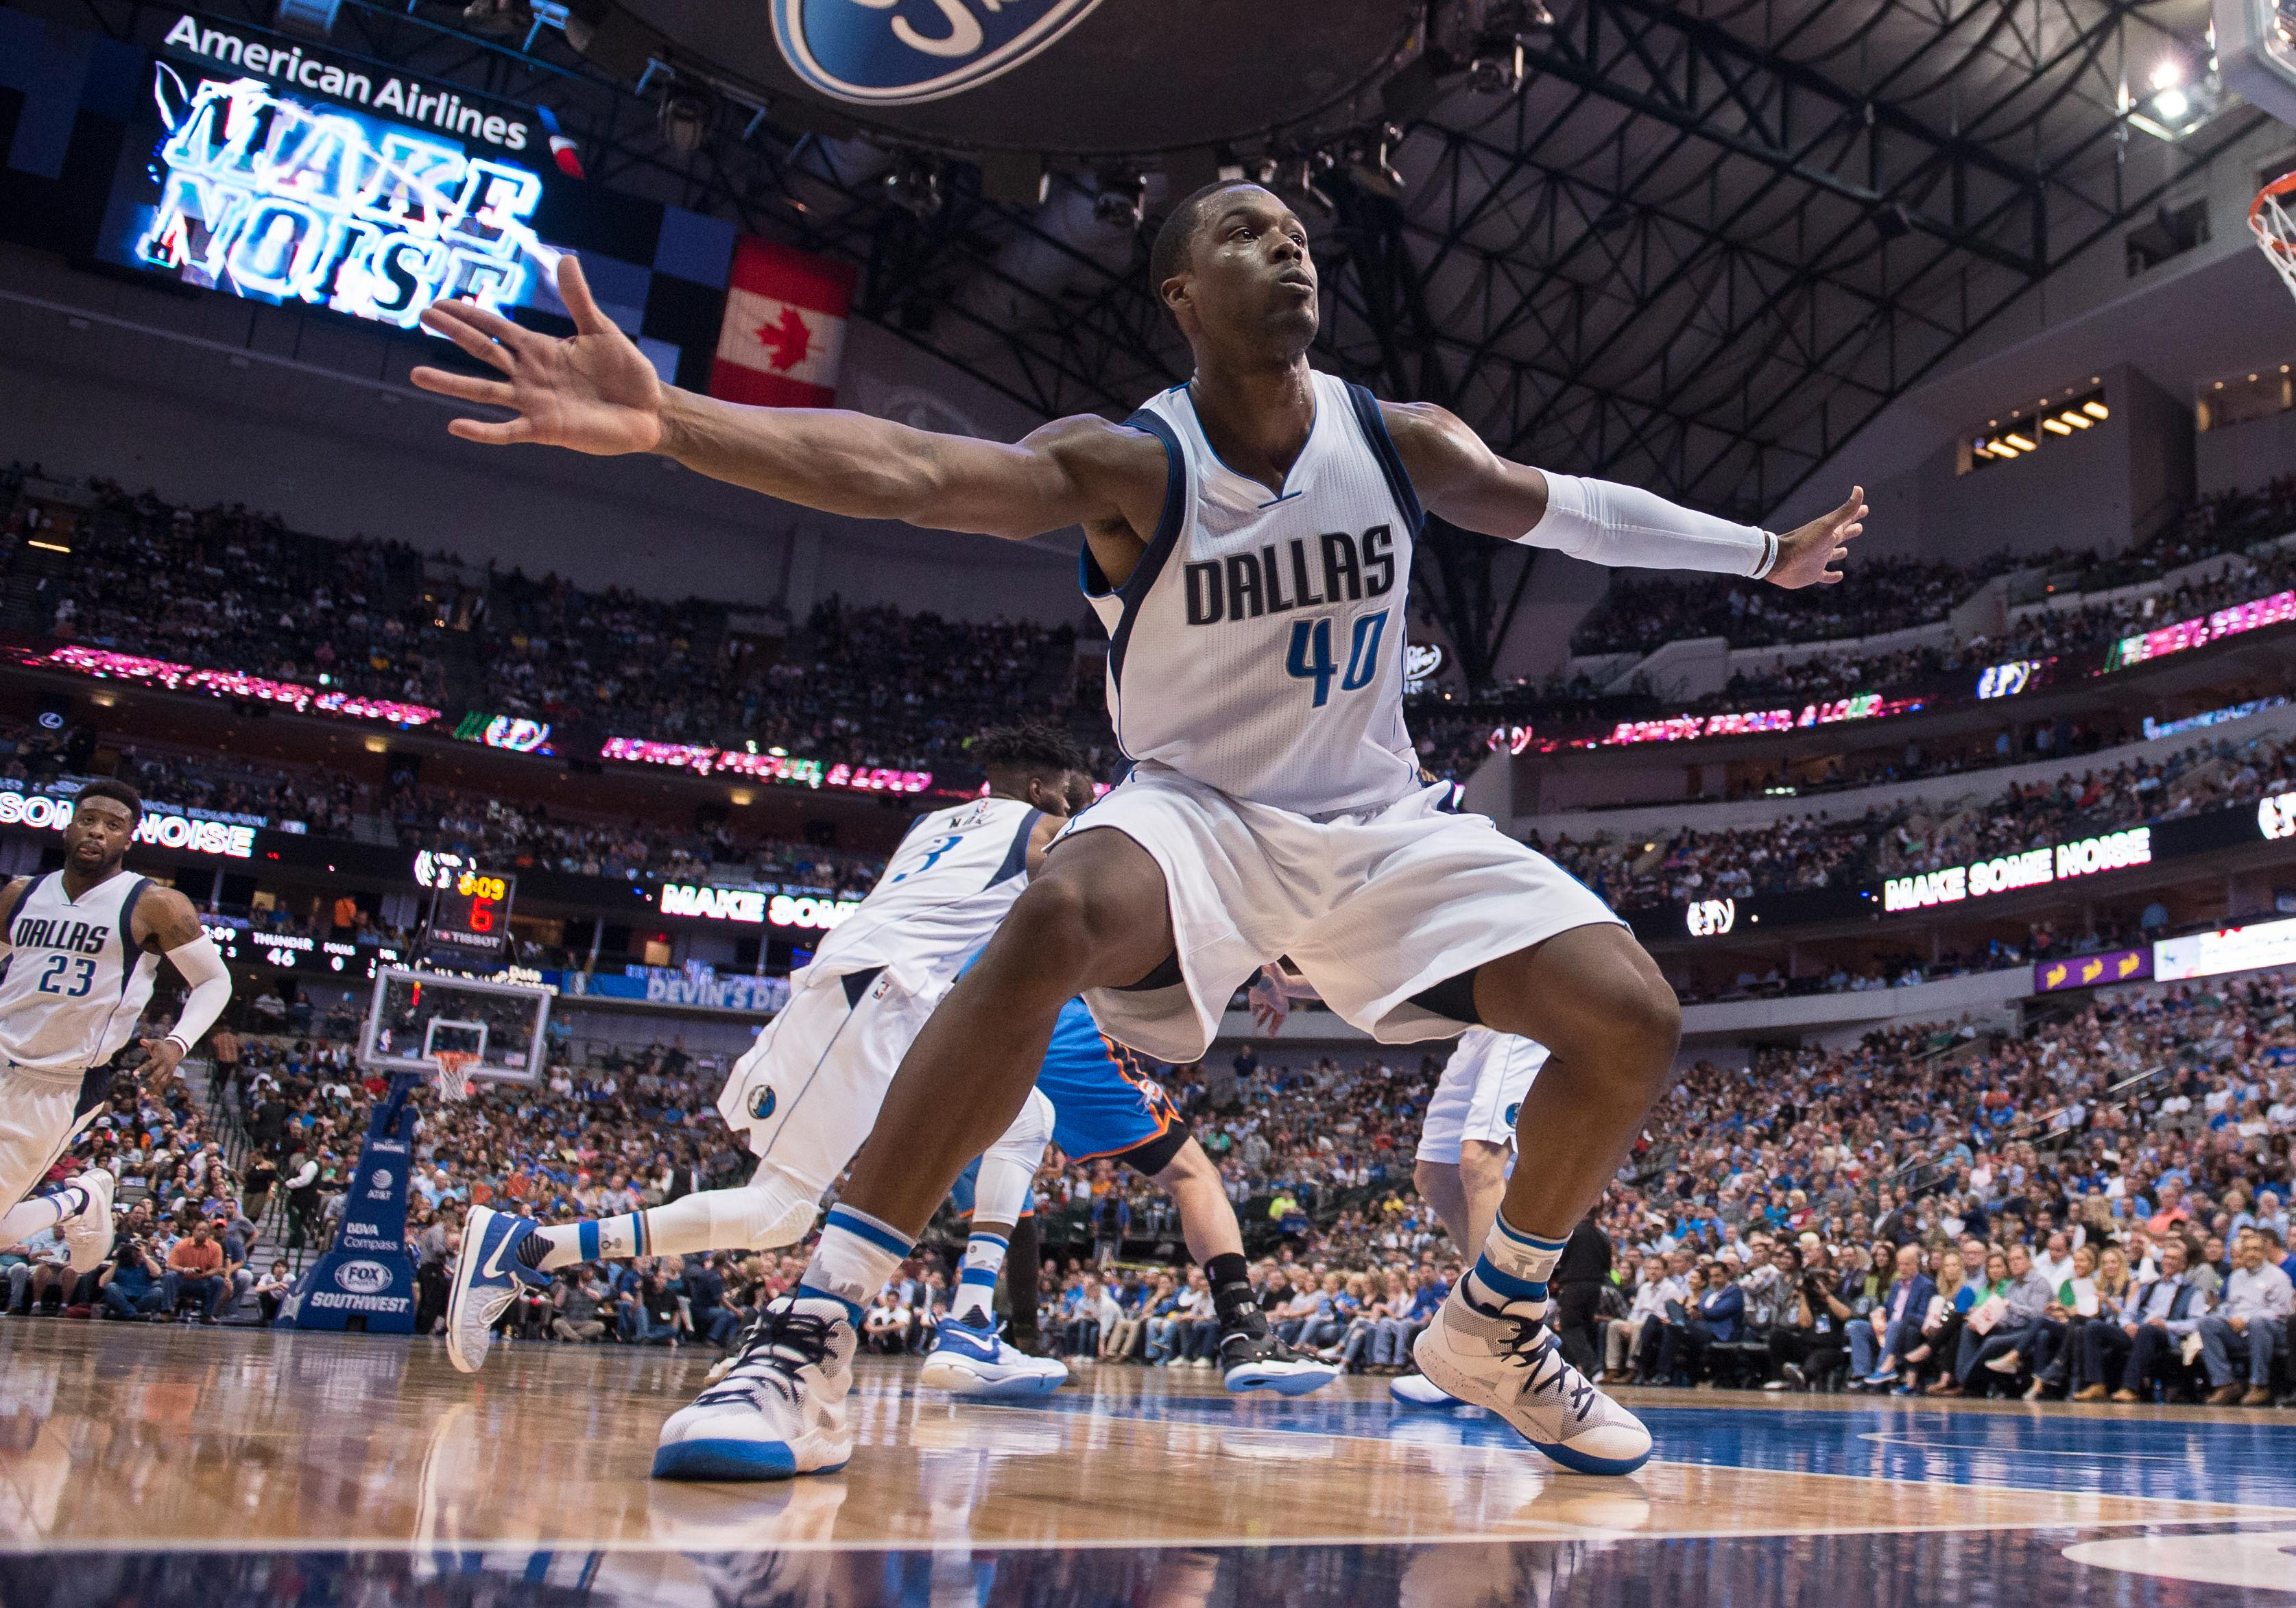 10051178-nba-oklahoma-city-thunder-at-dallas-mavericks